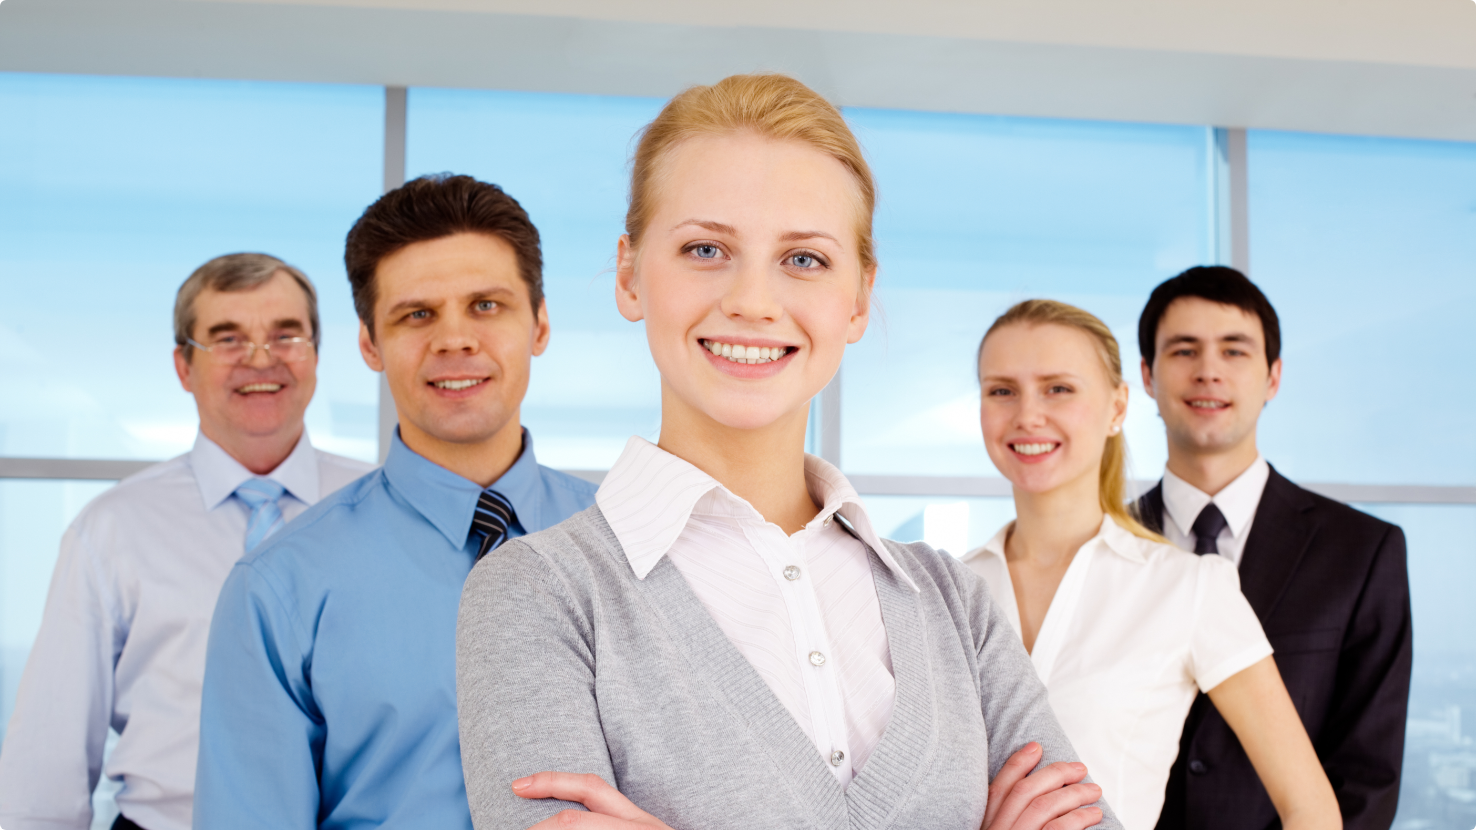 graphicstock-portrait-of-pretty-leader-looking-at-camera-with-business-team-behind_Sp3N-xV-Eb@2x